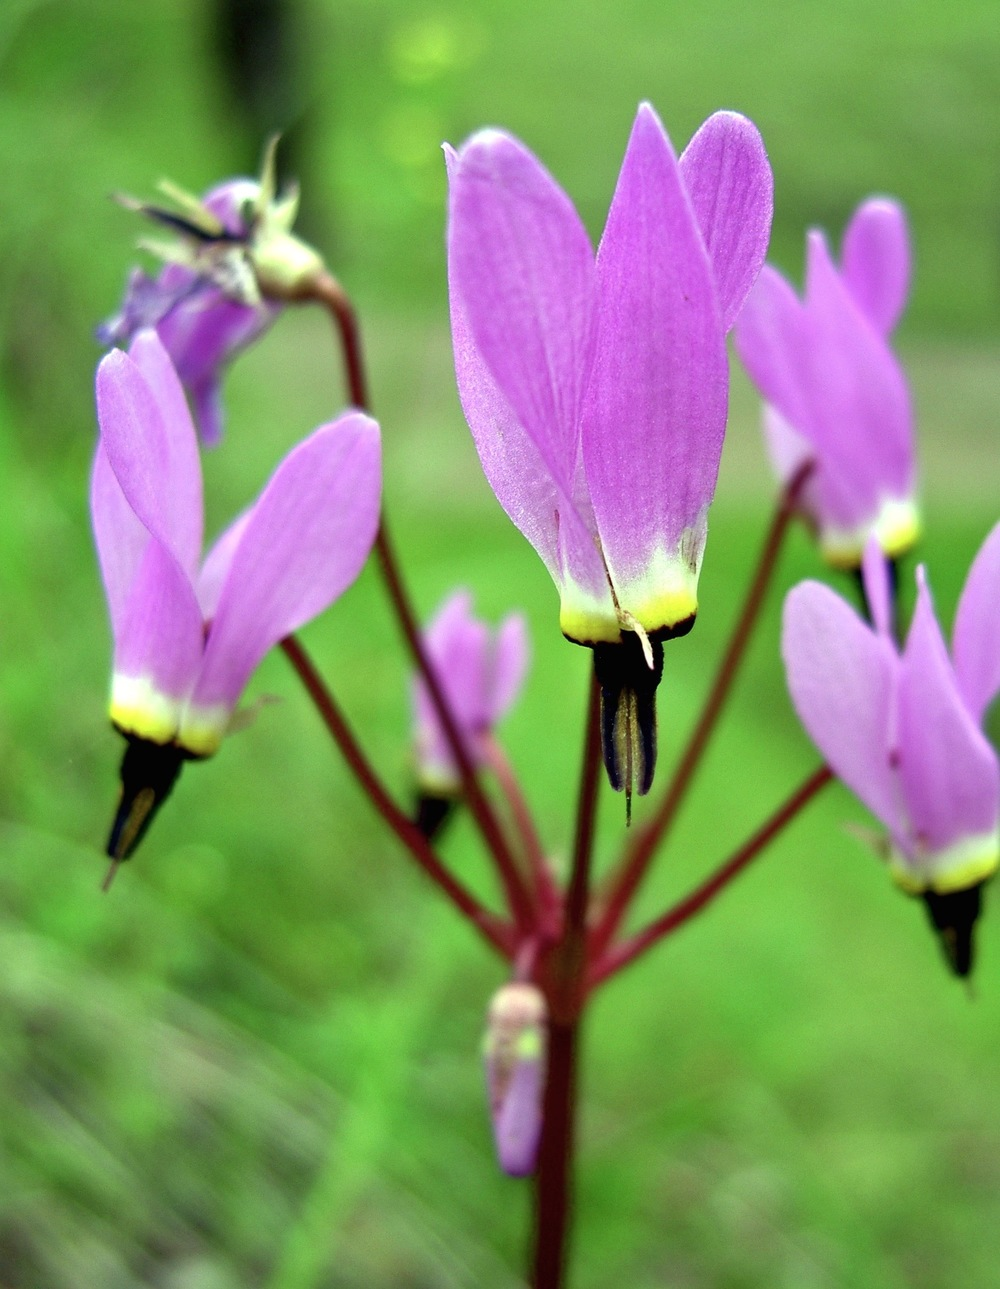 The violet voltage of shooting stars crackles through Mariposa Canyon in spring.